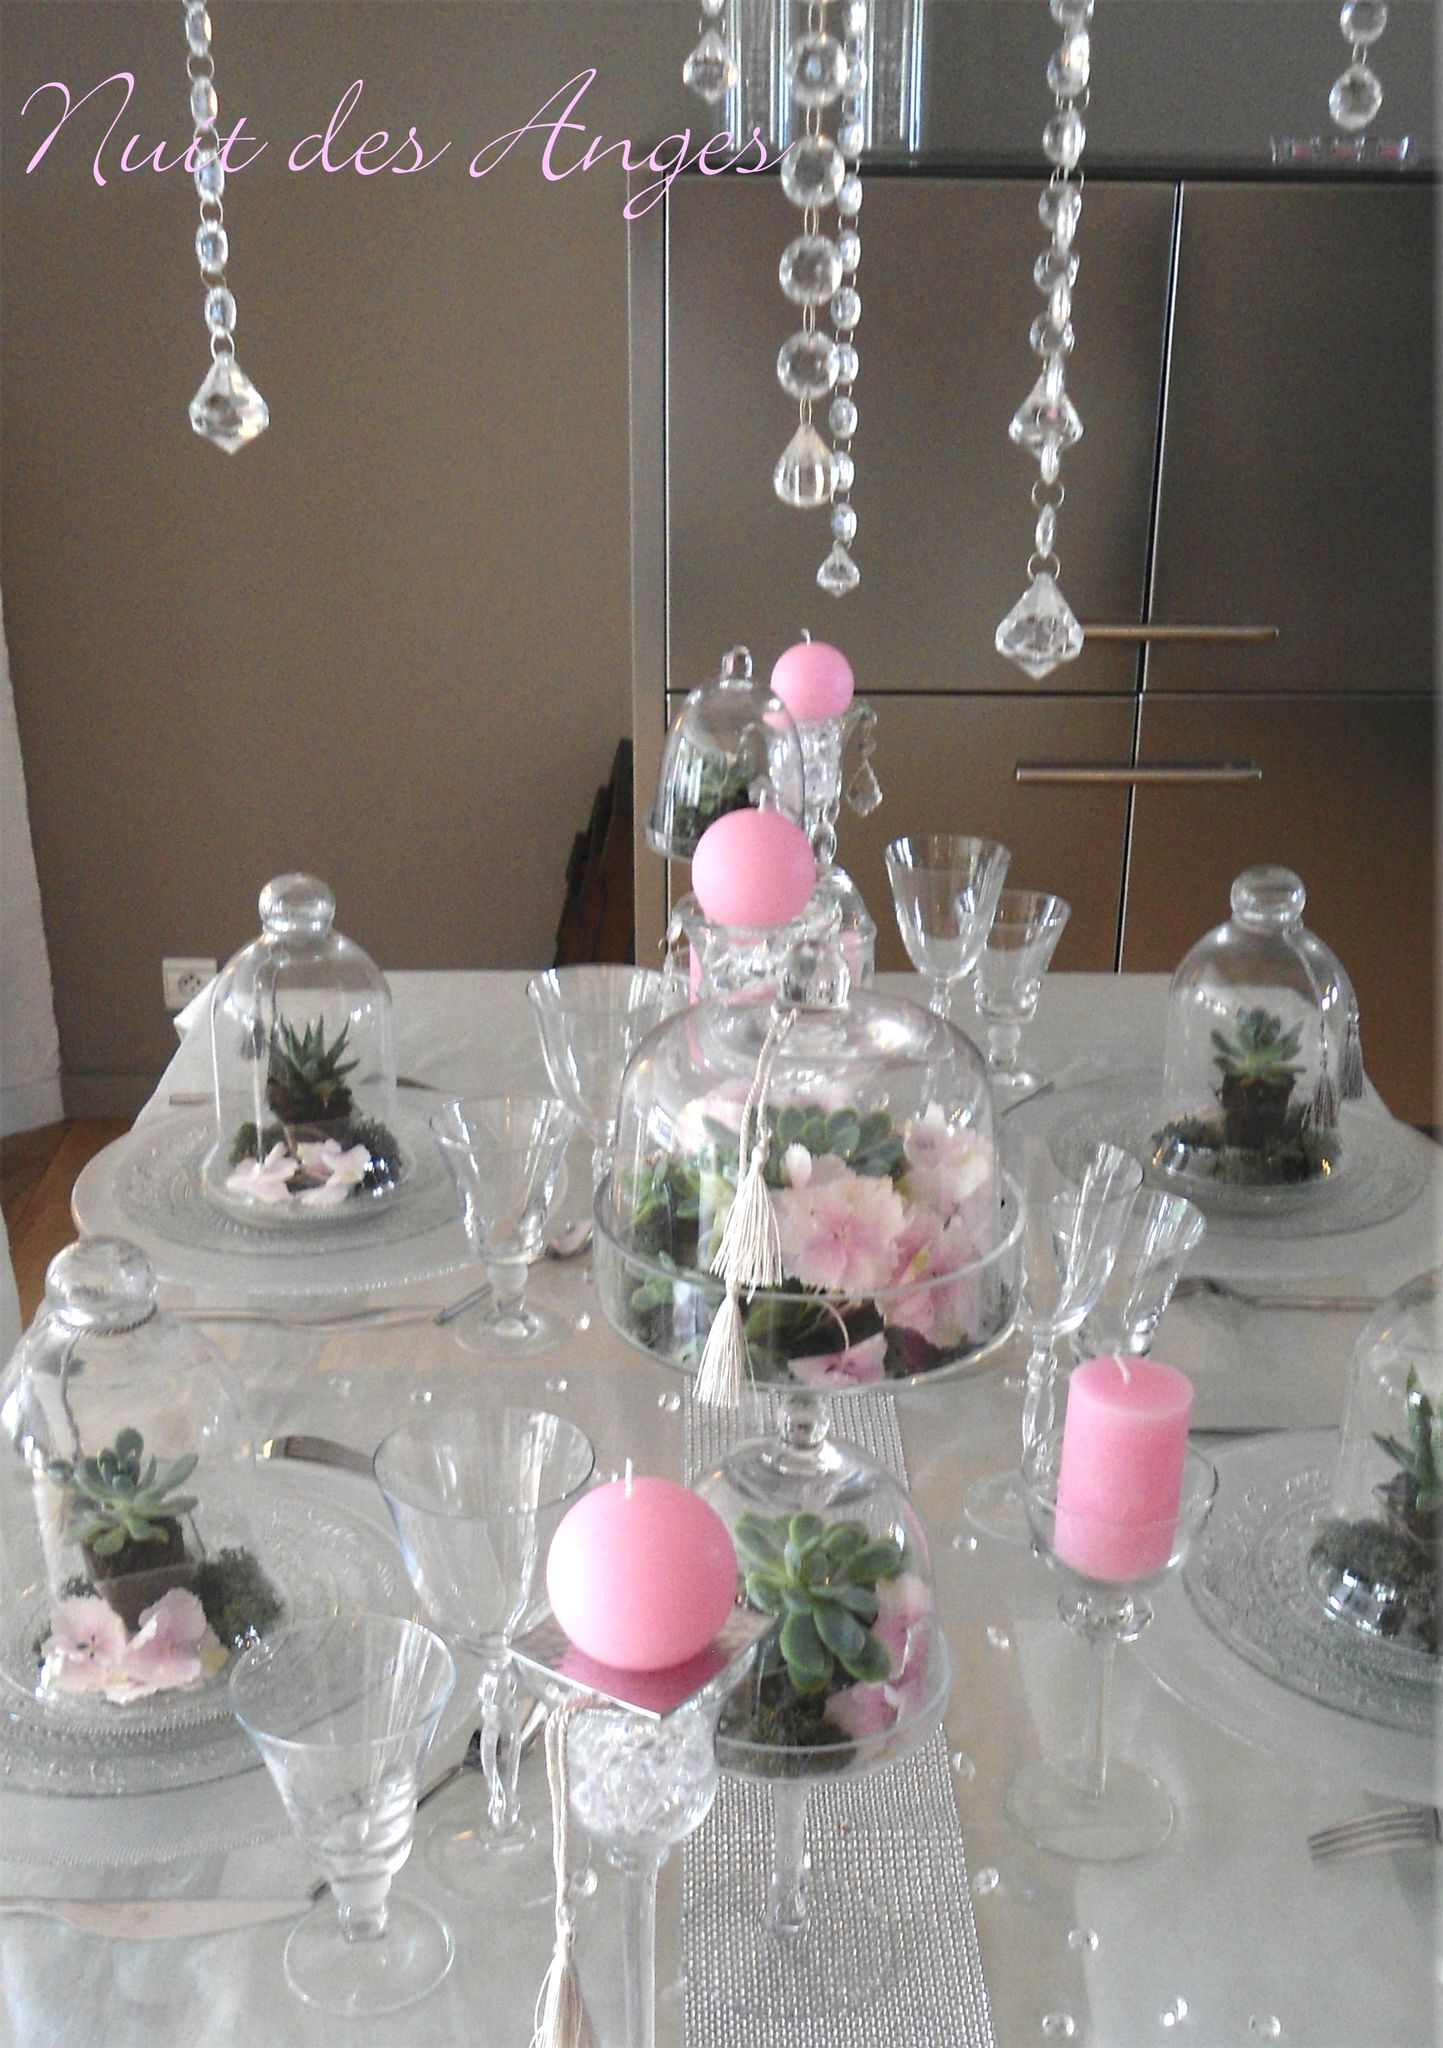 Nuit Des Anges D Coratrice De Mariage D Coration De Table Succulentes 001 Photo De D Coration